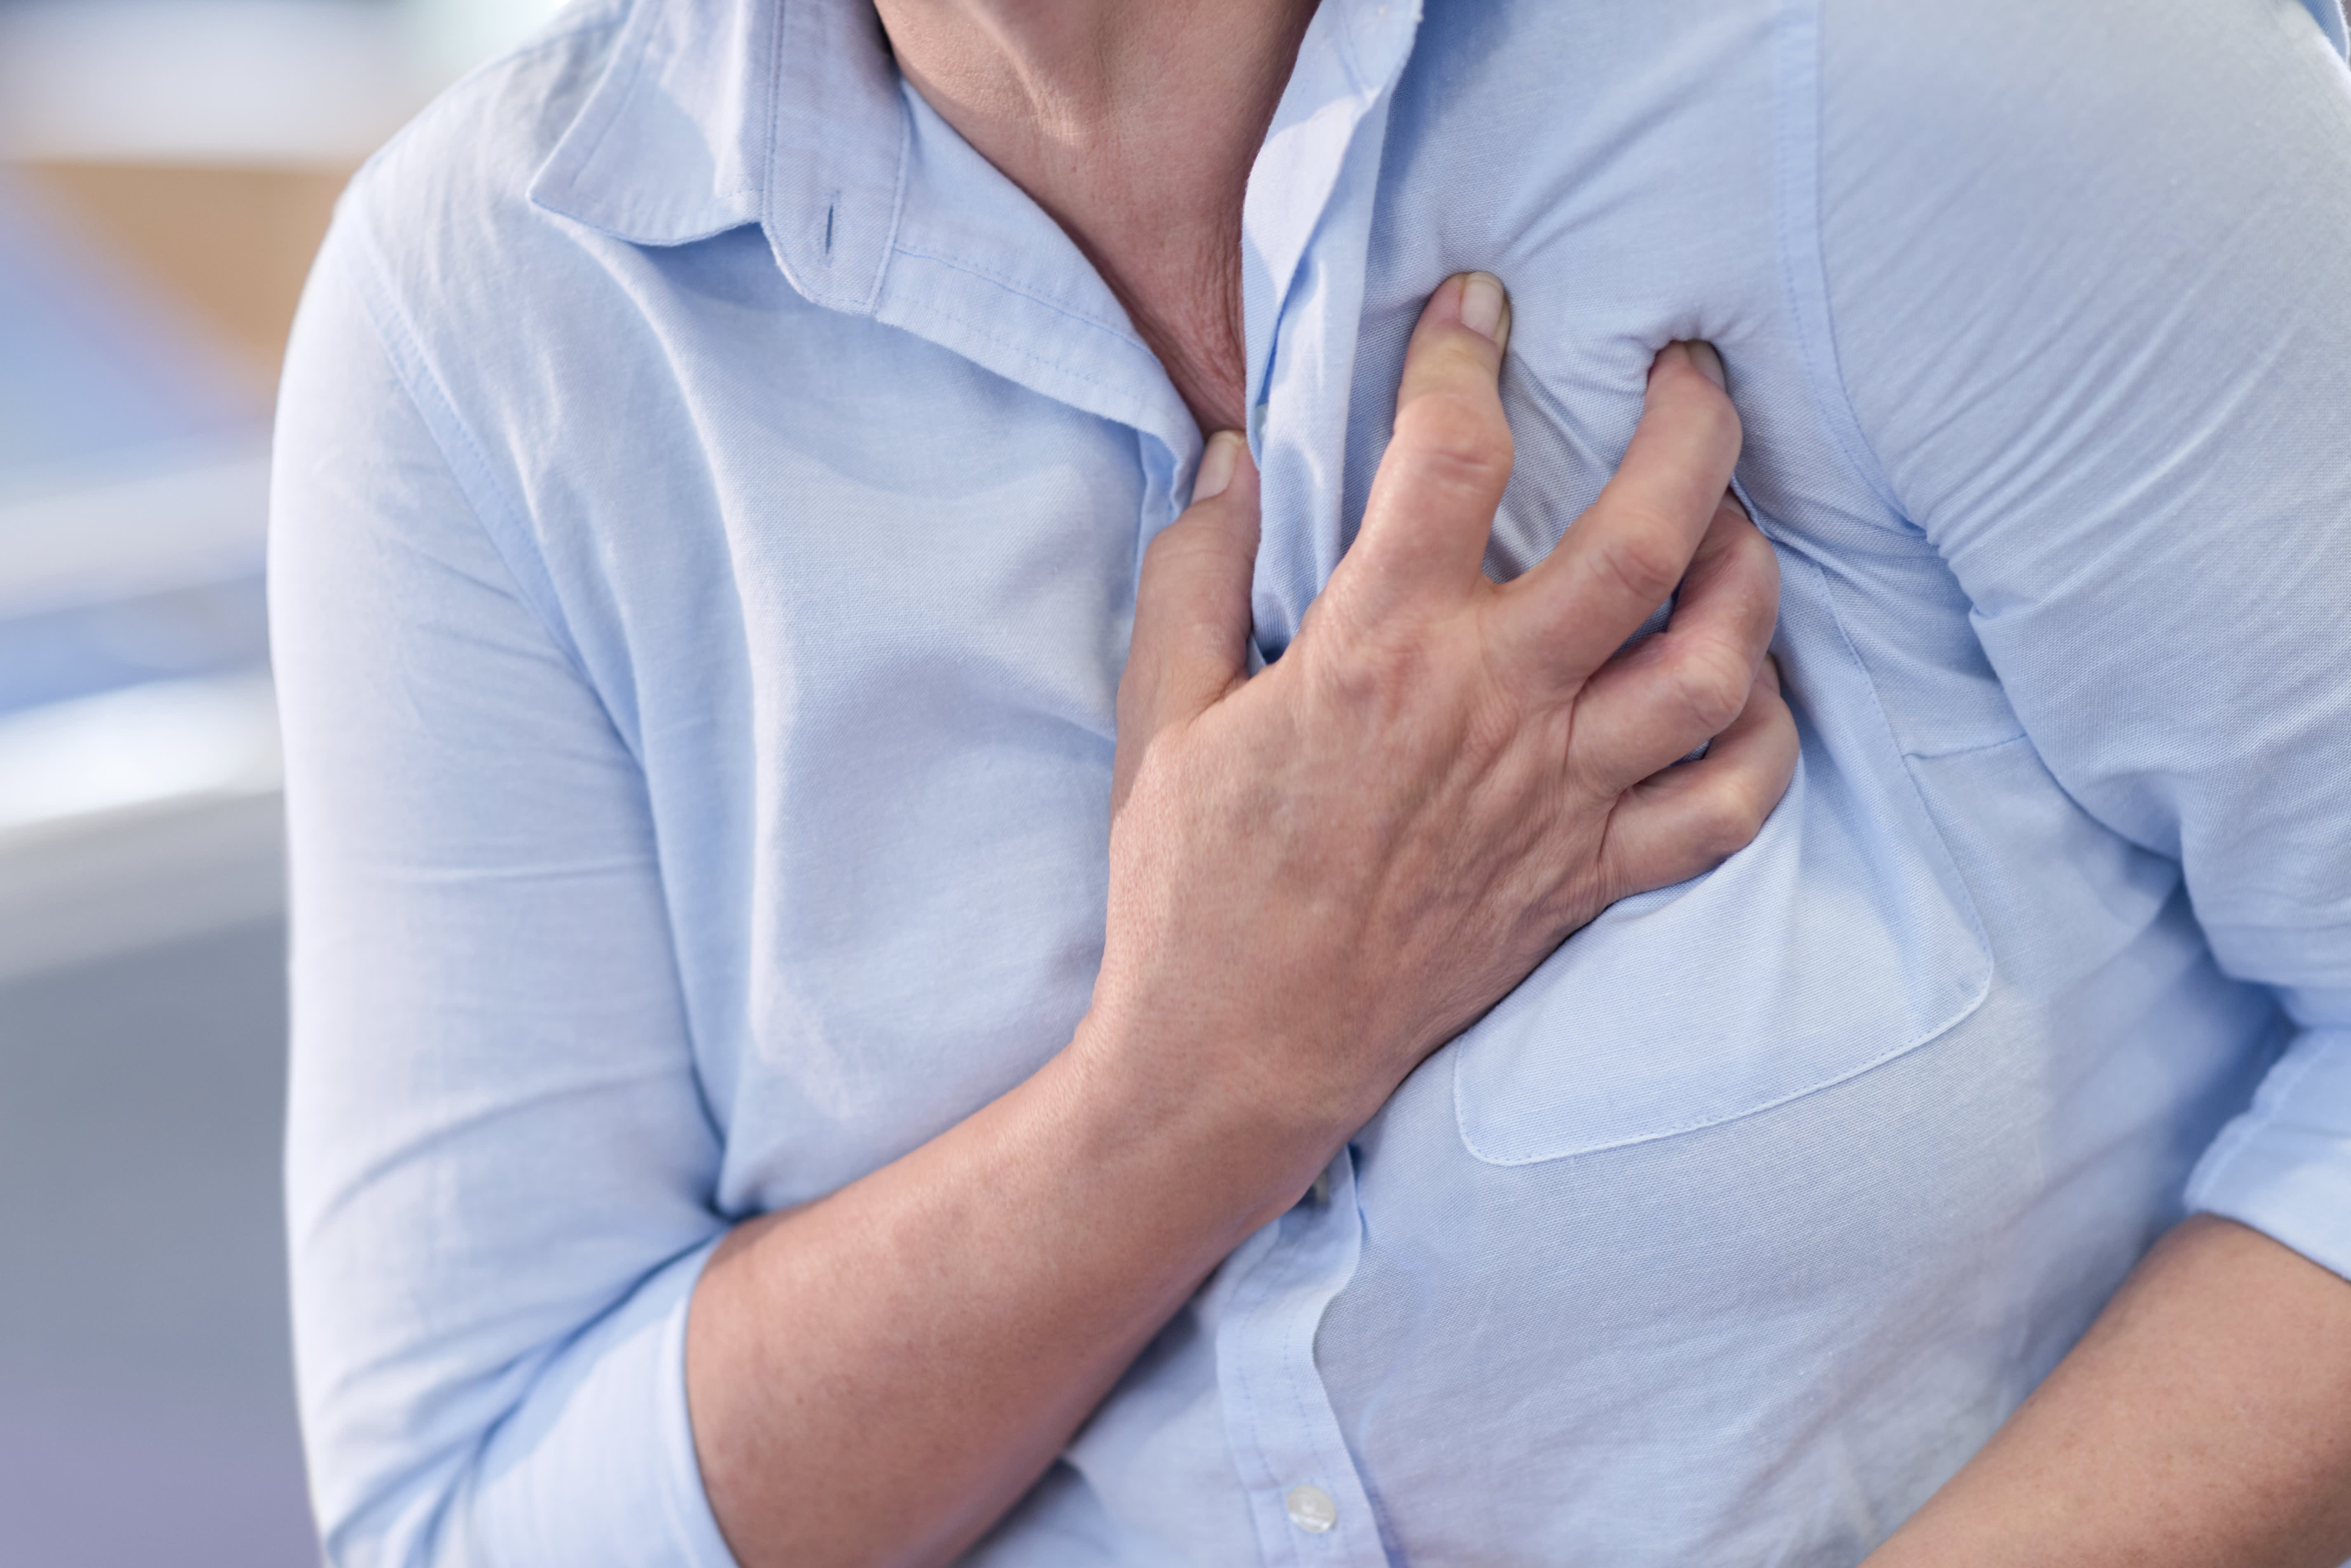 A.I. technology could identify those at risk of fatal heart attacks, research claims